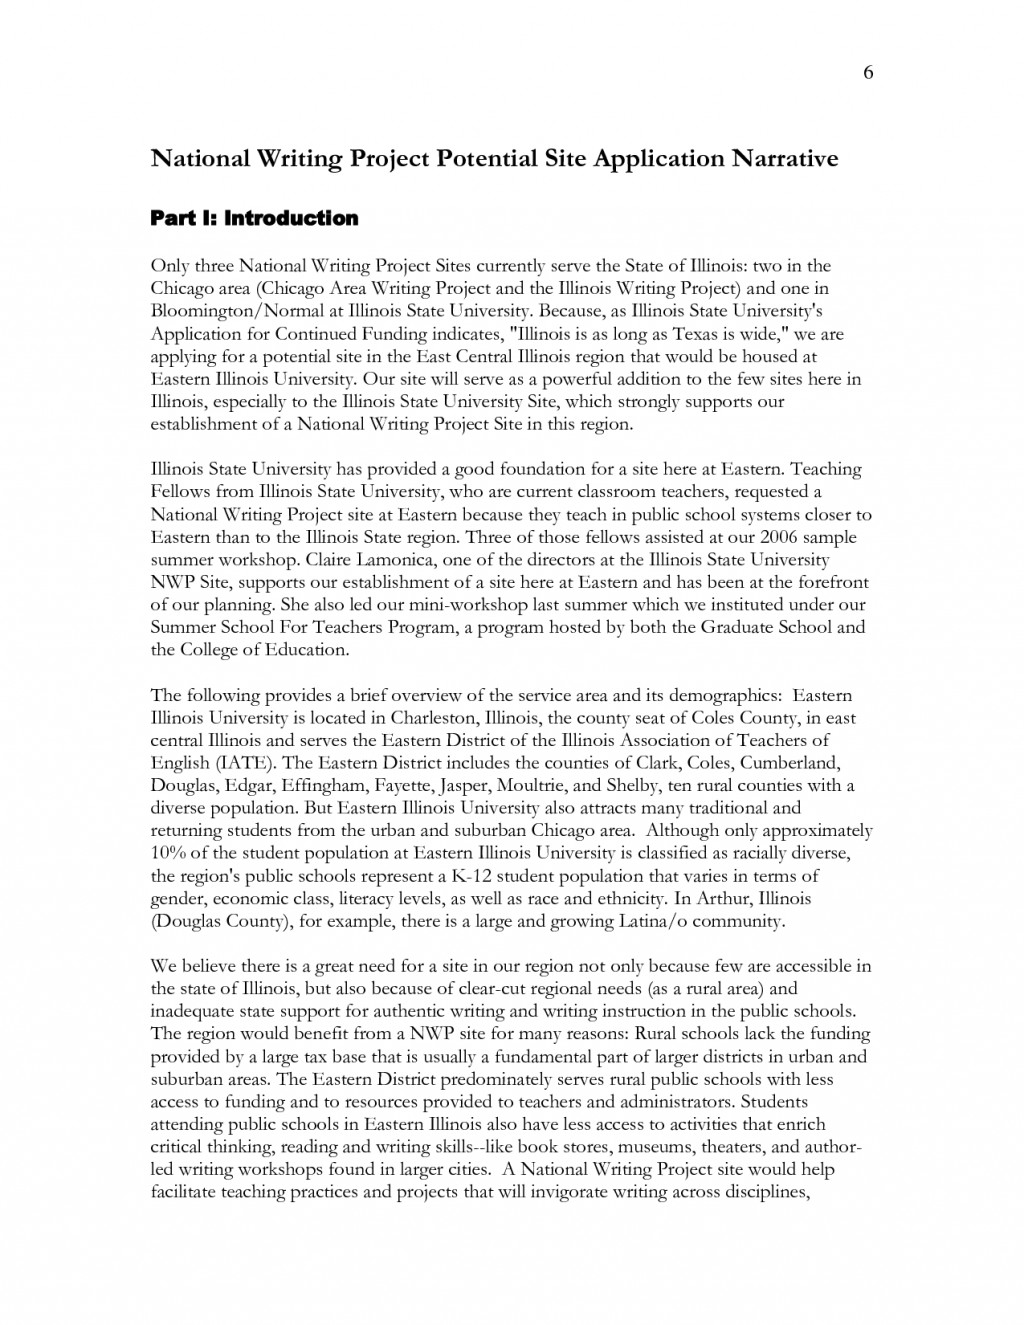 010 Essay Example Narrative For High School Goal Blockety Co Personal Examples Topics Students Short Unique Pdf Large